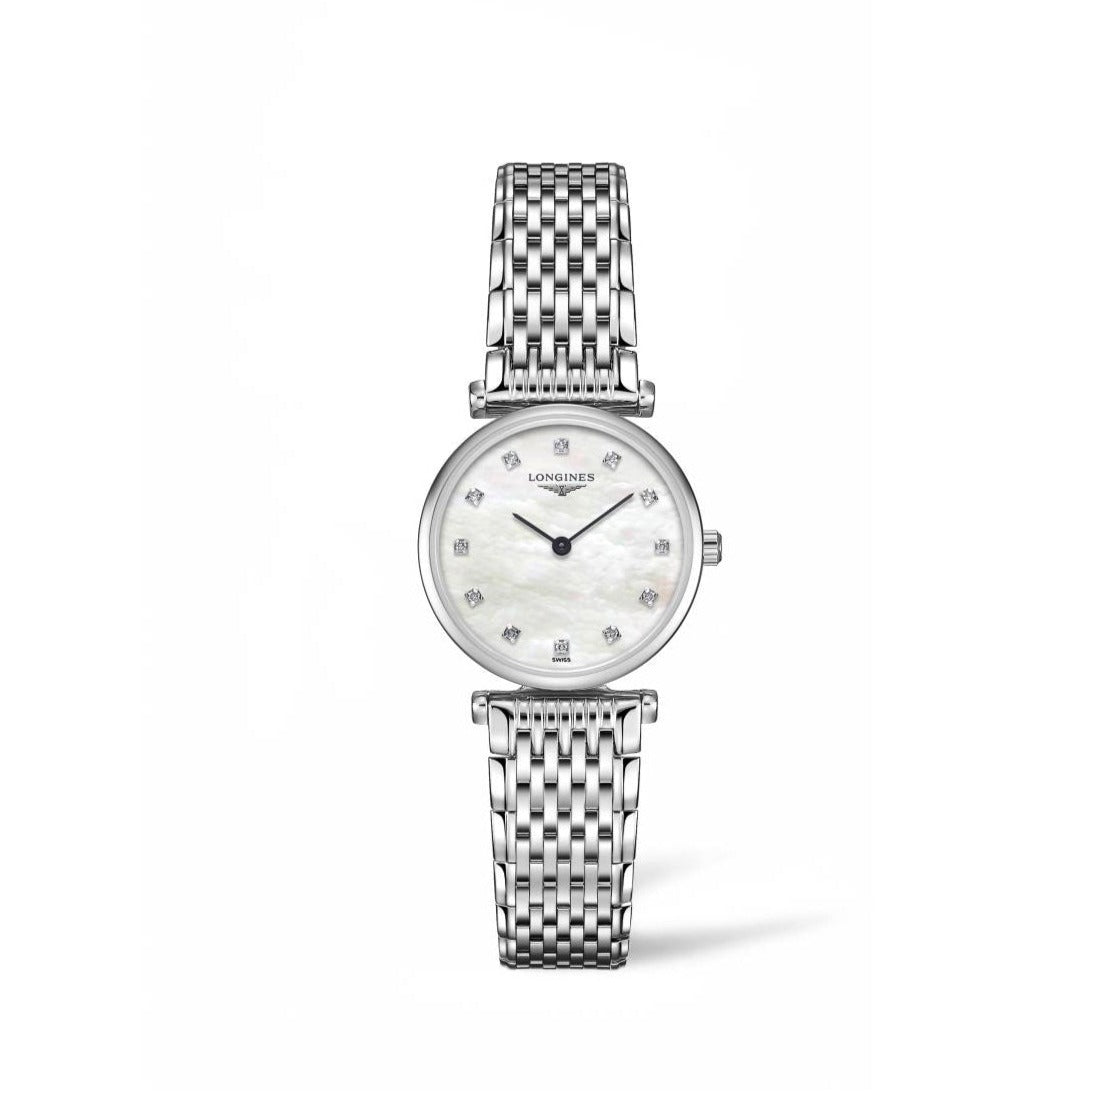 Longines La Grande Classique Collection 24mm Stainless Steel Ladies' Watch with Diamonds